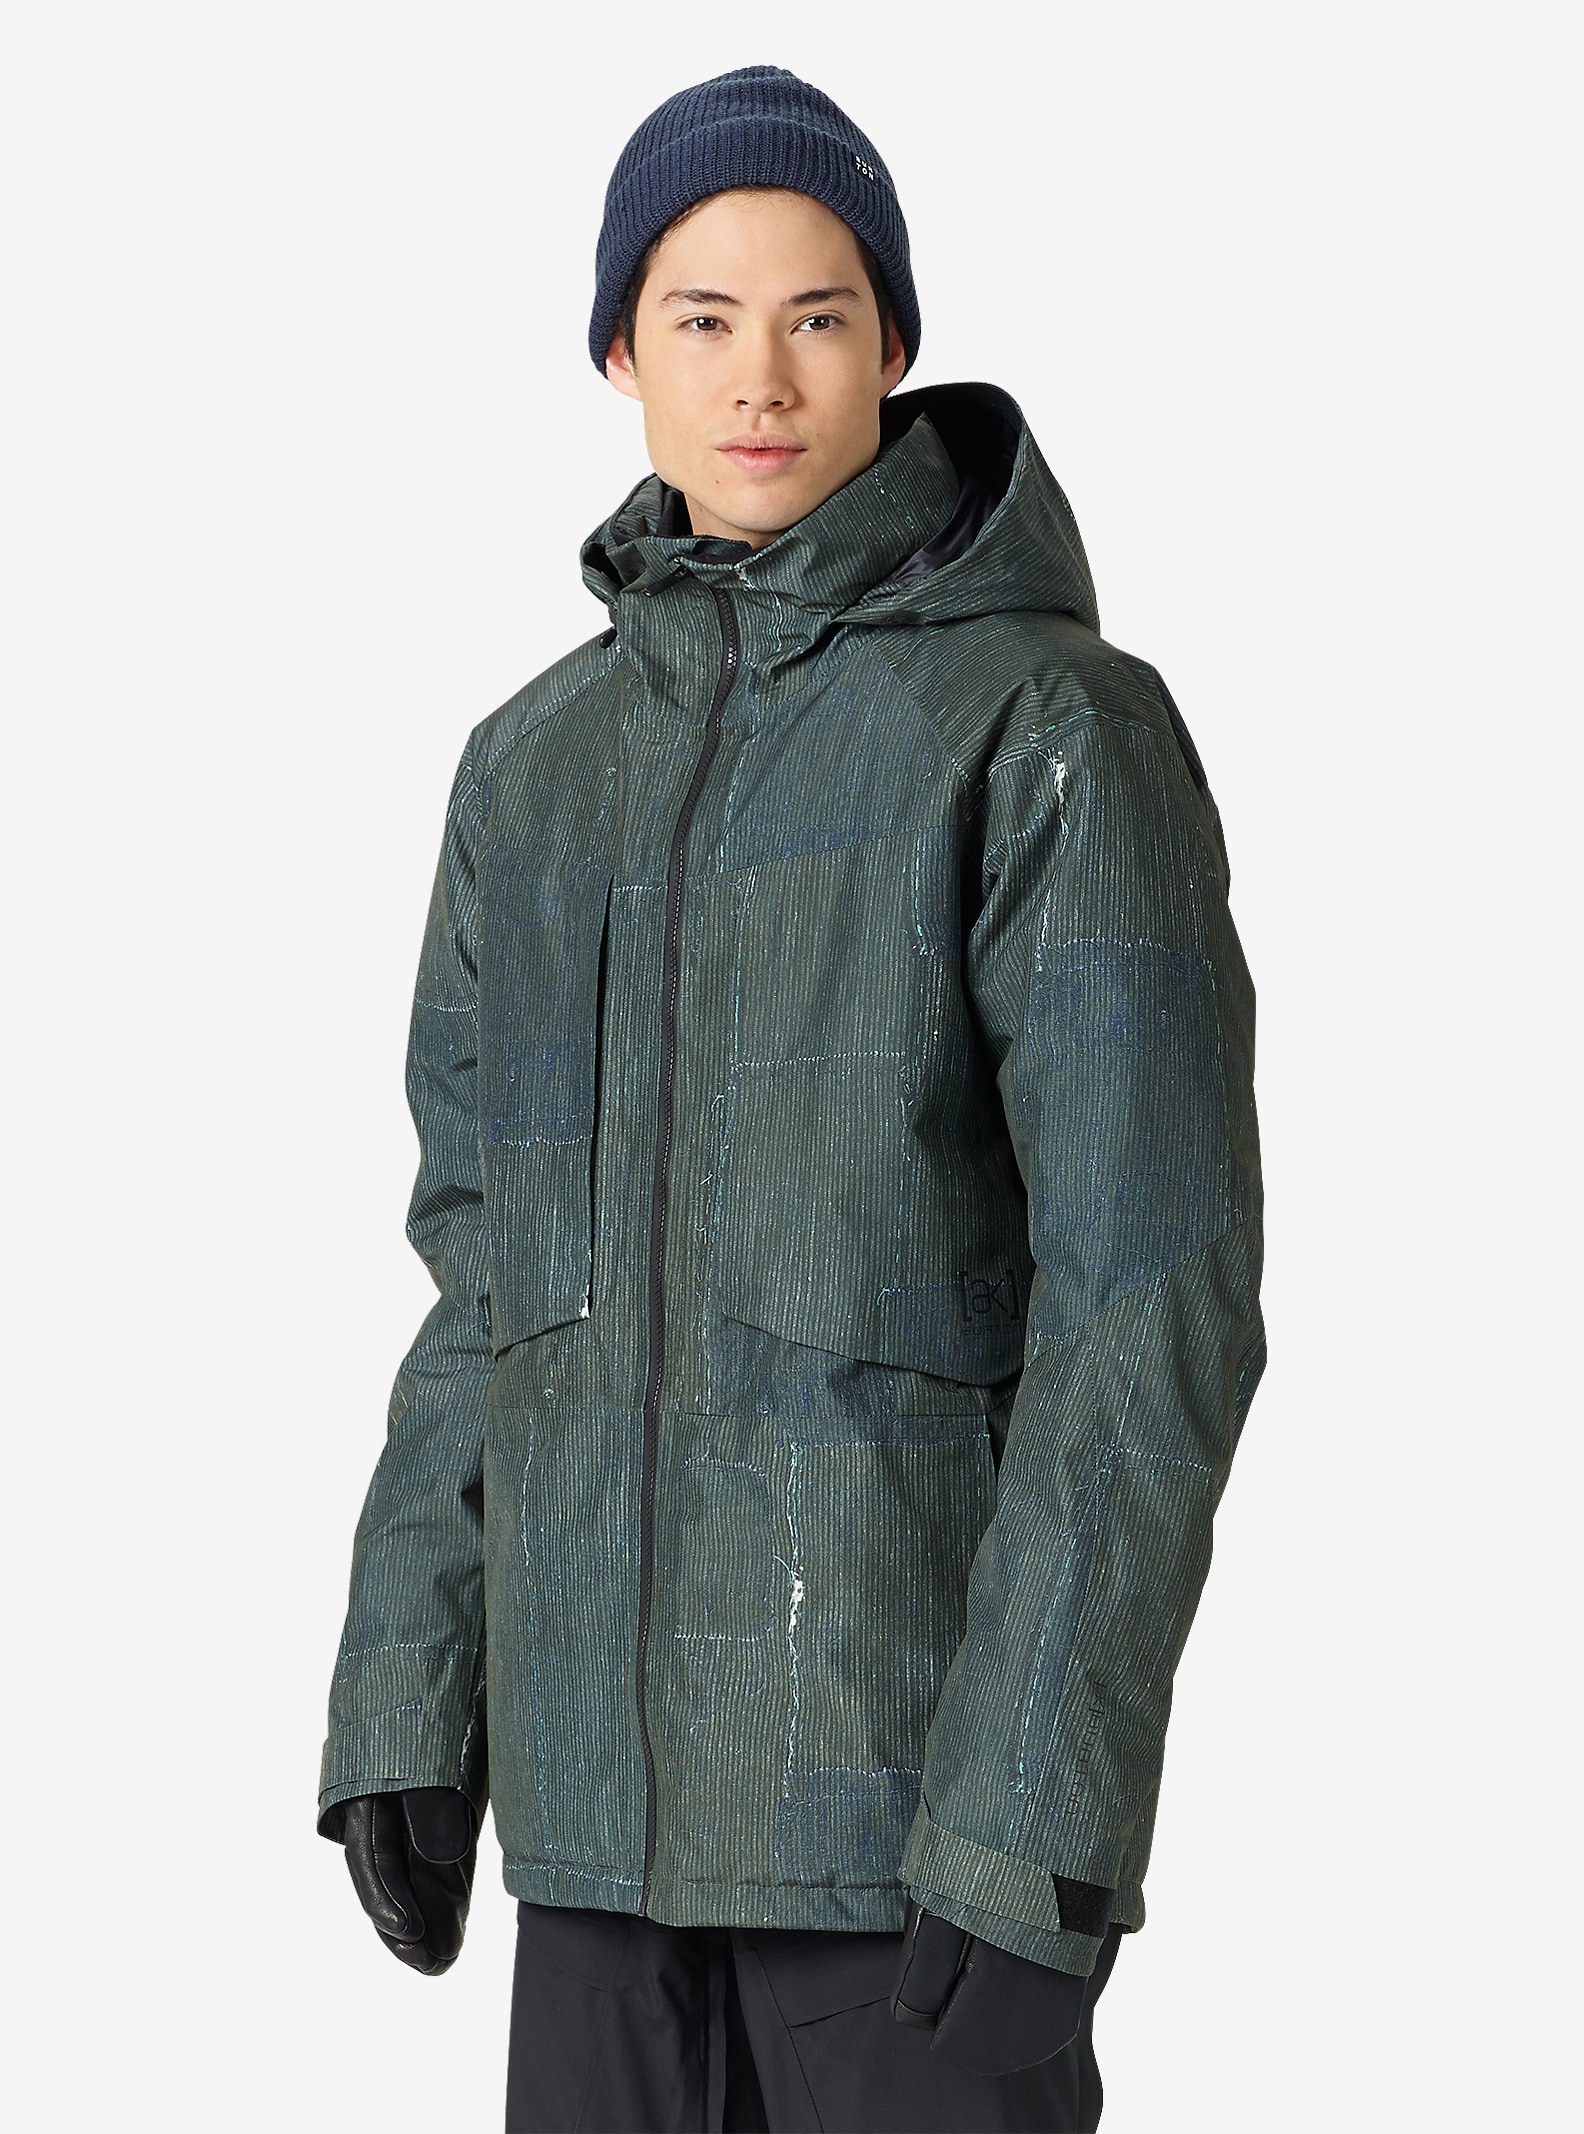 Burton [ak] 2L LZ Down Jacket shown in Station Stripe